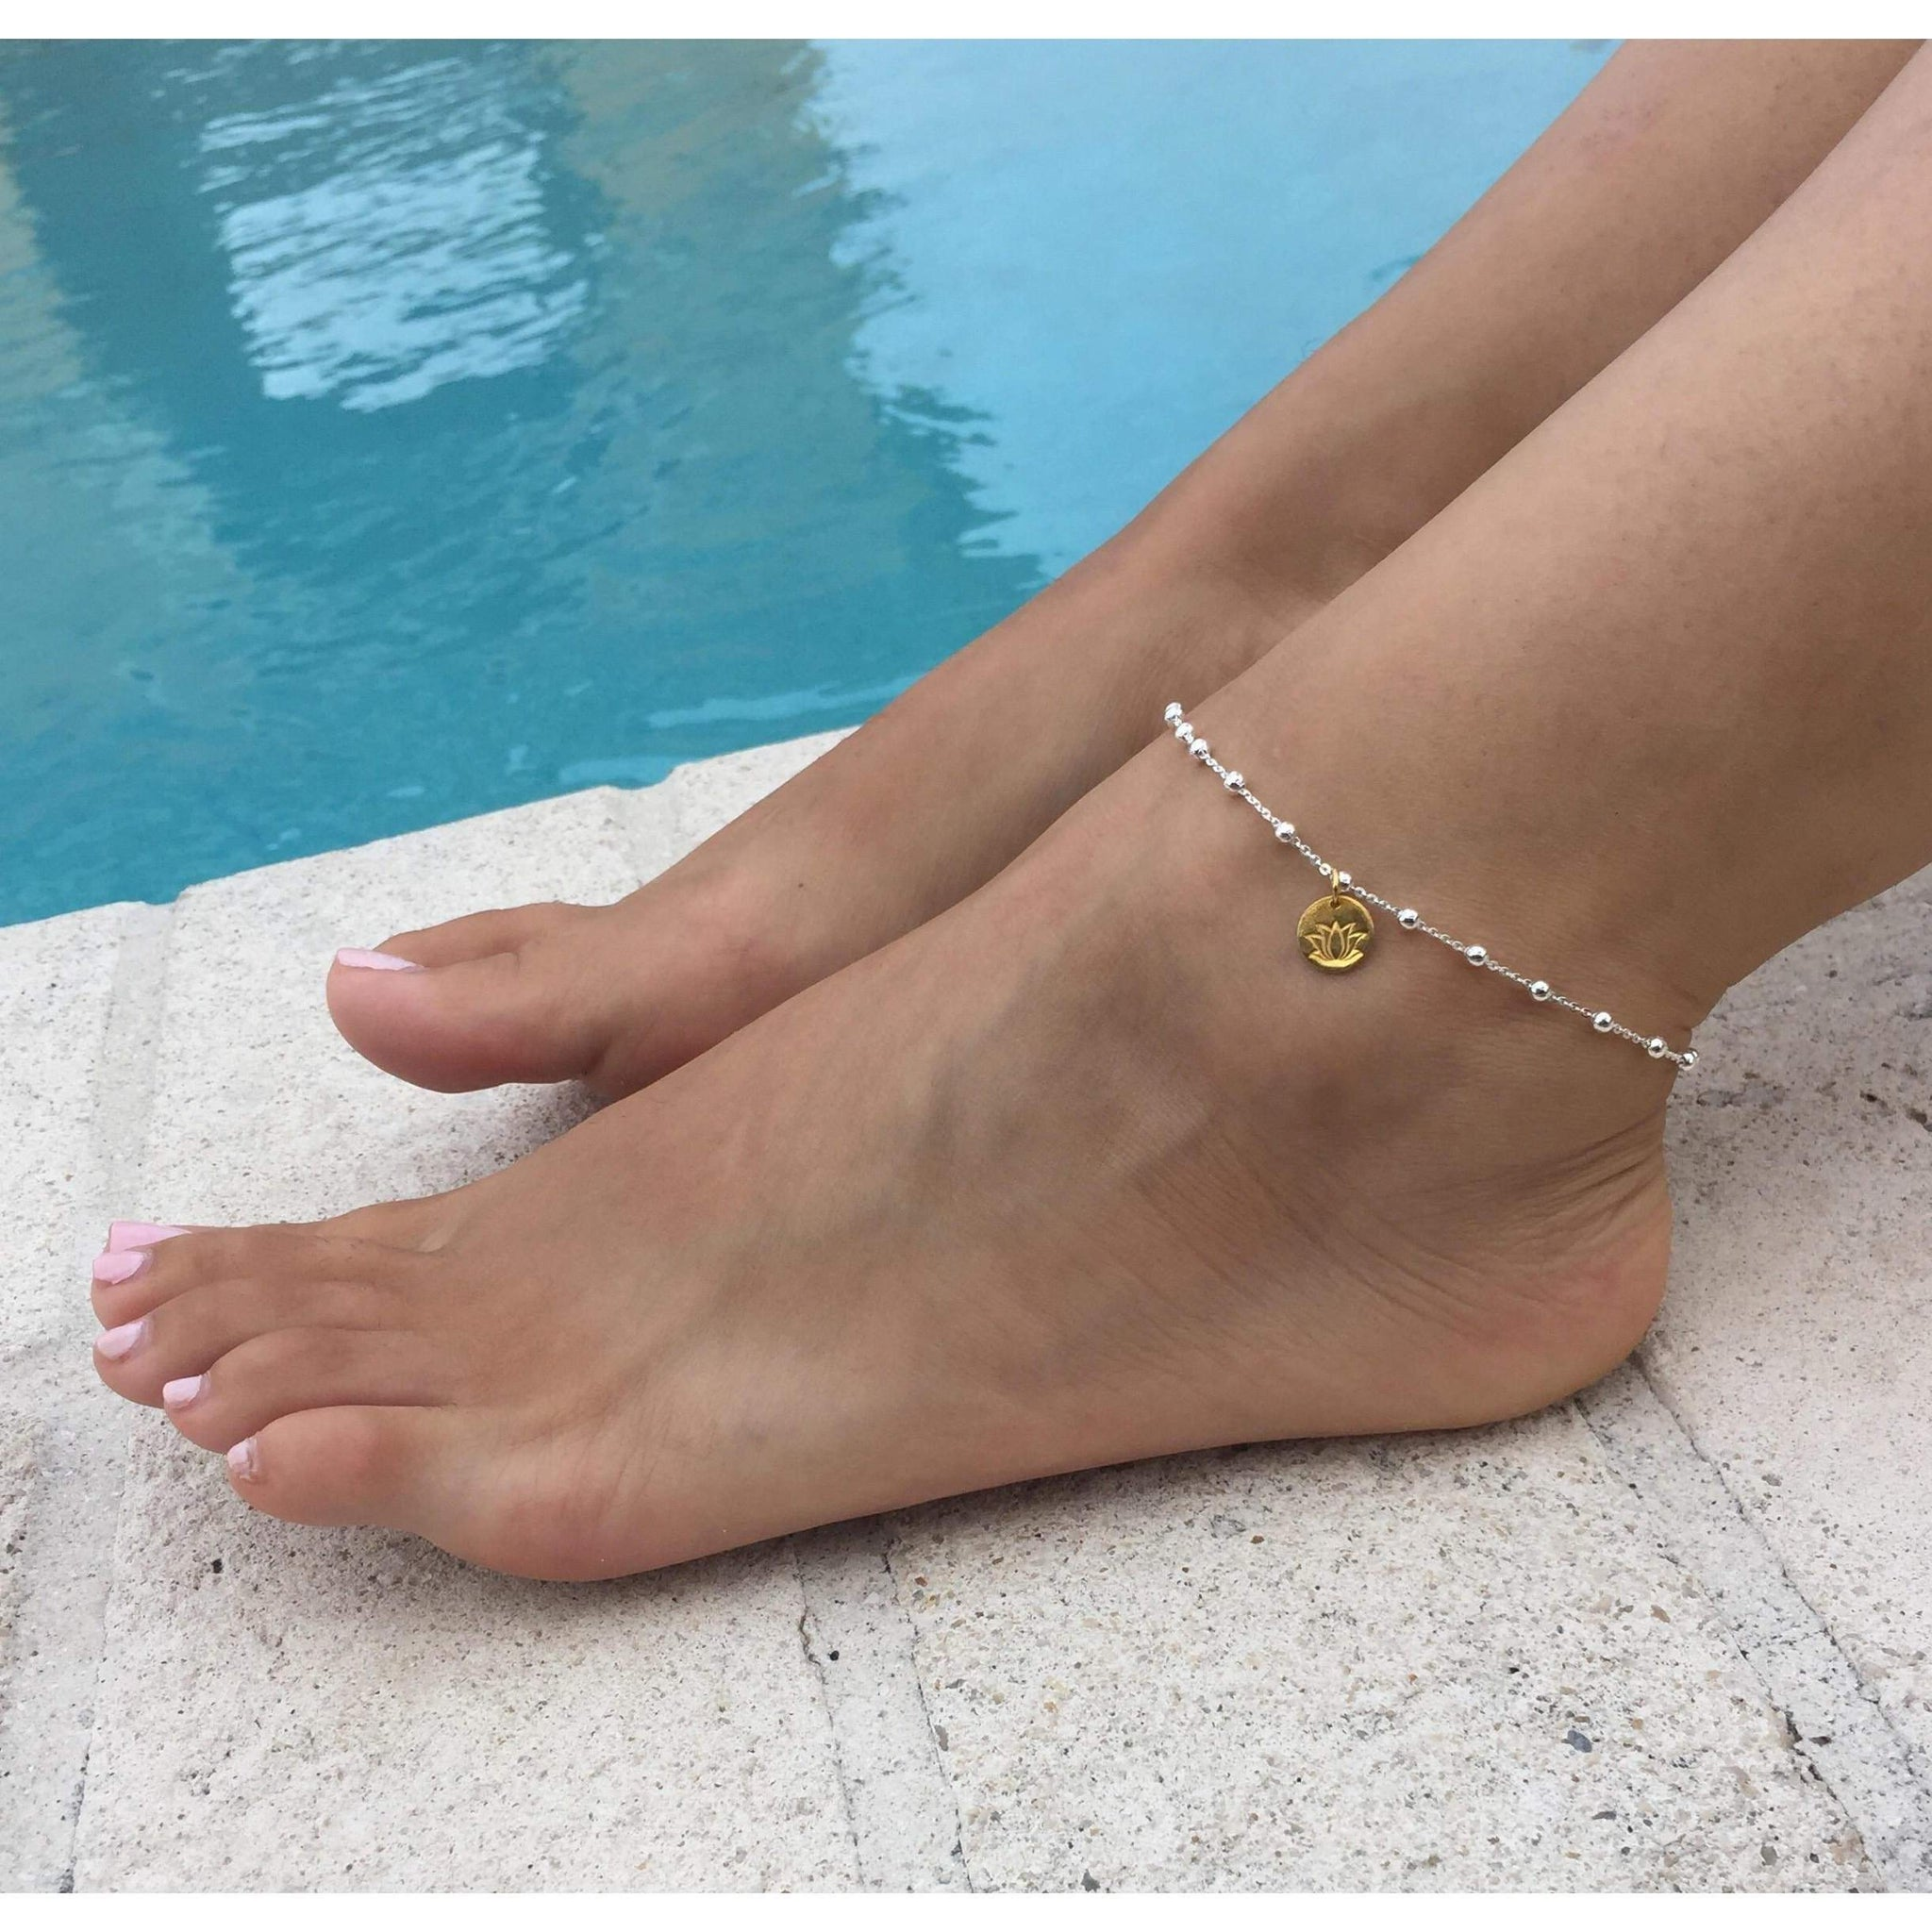 anklet az ja bling ankle sterling appl bracelets dangling adjustable jewelry bracelet hearts silver heart